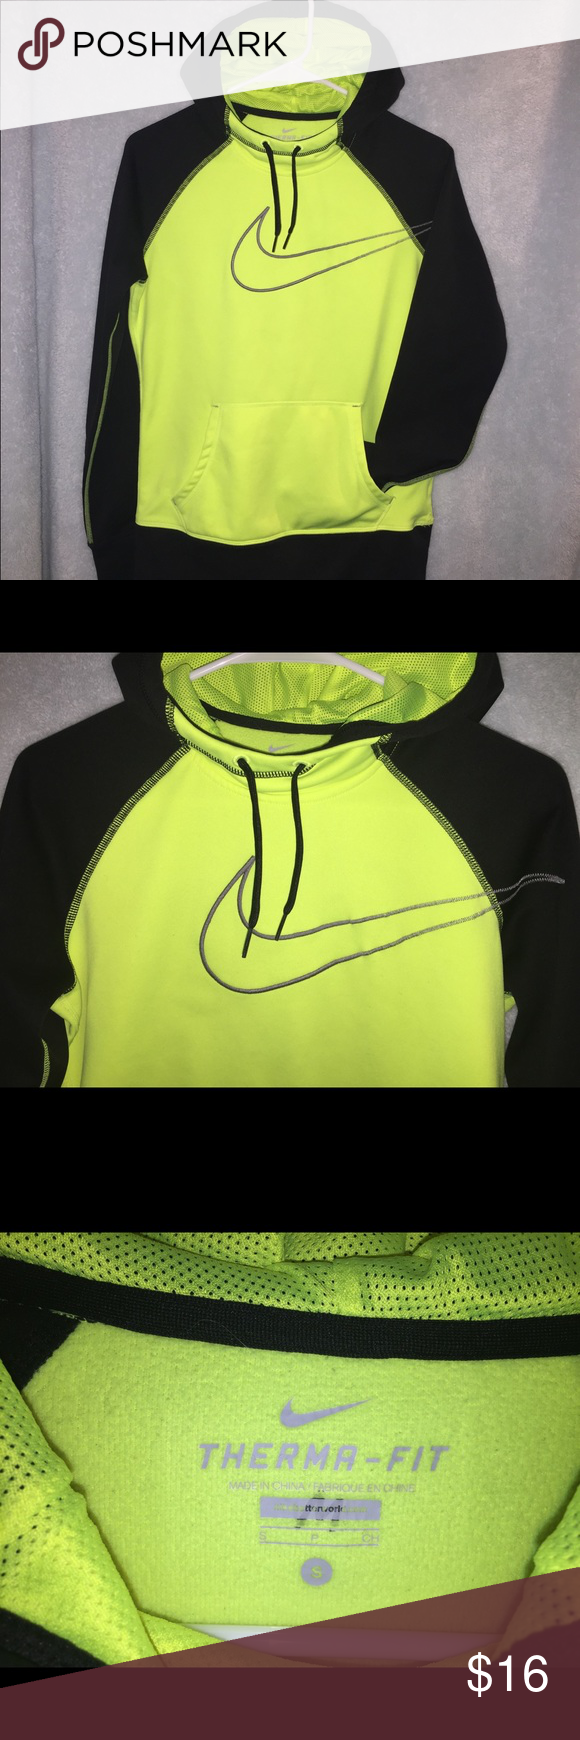 Nike hoodie size small Nike hoodie with cowl neck and thumb holes. In great condition! Size small. Get ready for fall in style! Nike Tops Sweatshirts & Hoodies